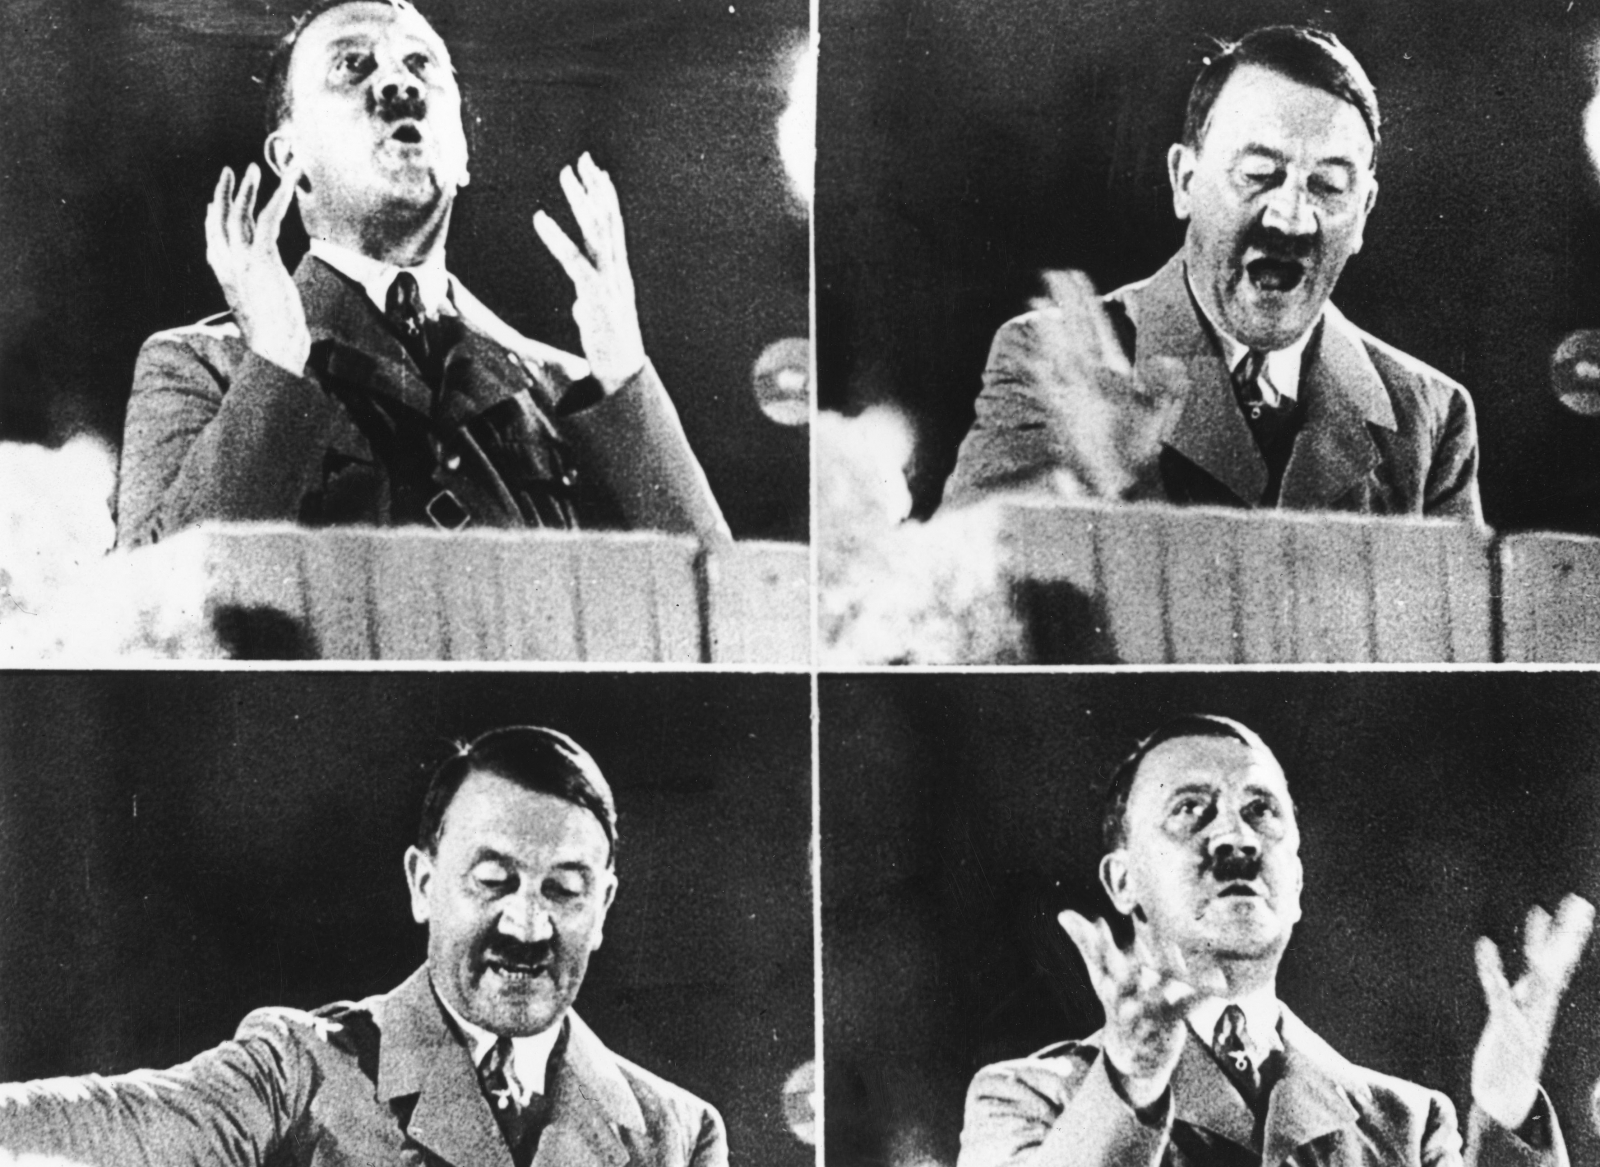 an overview of the early life and conduct of adolf hitler during his dictatorial rule Images of adolf hitler are seen at an art festival in weimar, germany, in this aug 31, 2015, file photo (cns photo/sebastiana kehnert, epa) the former, weikart notes, was related to theological.